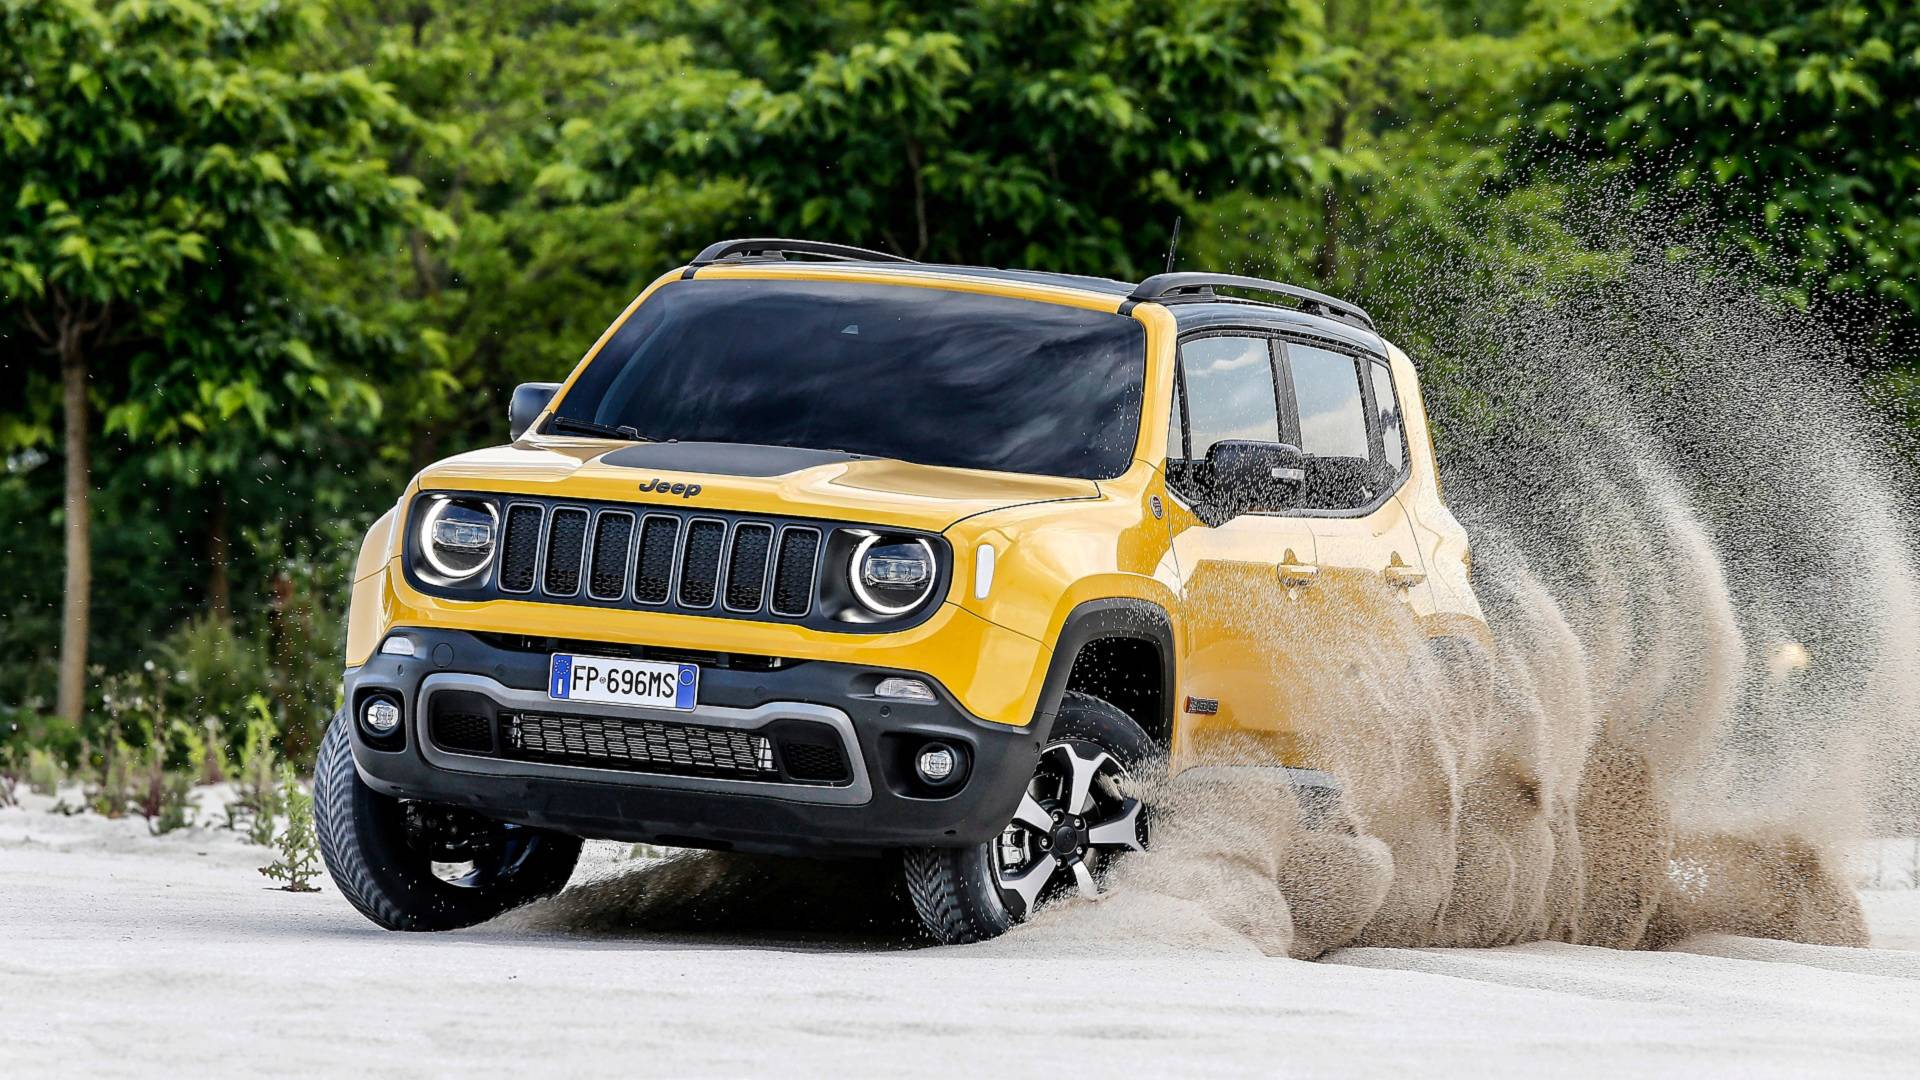 jeep renegade my19 - JEEP RENEGADE LONGITUDE MODEL YEAR 2019 1.6 MULTIJET